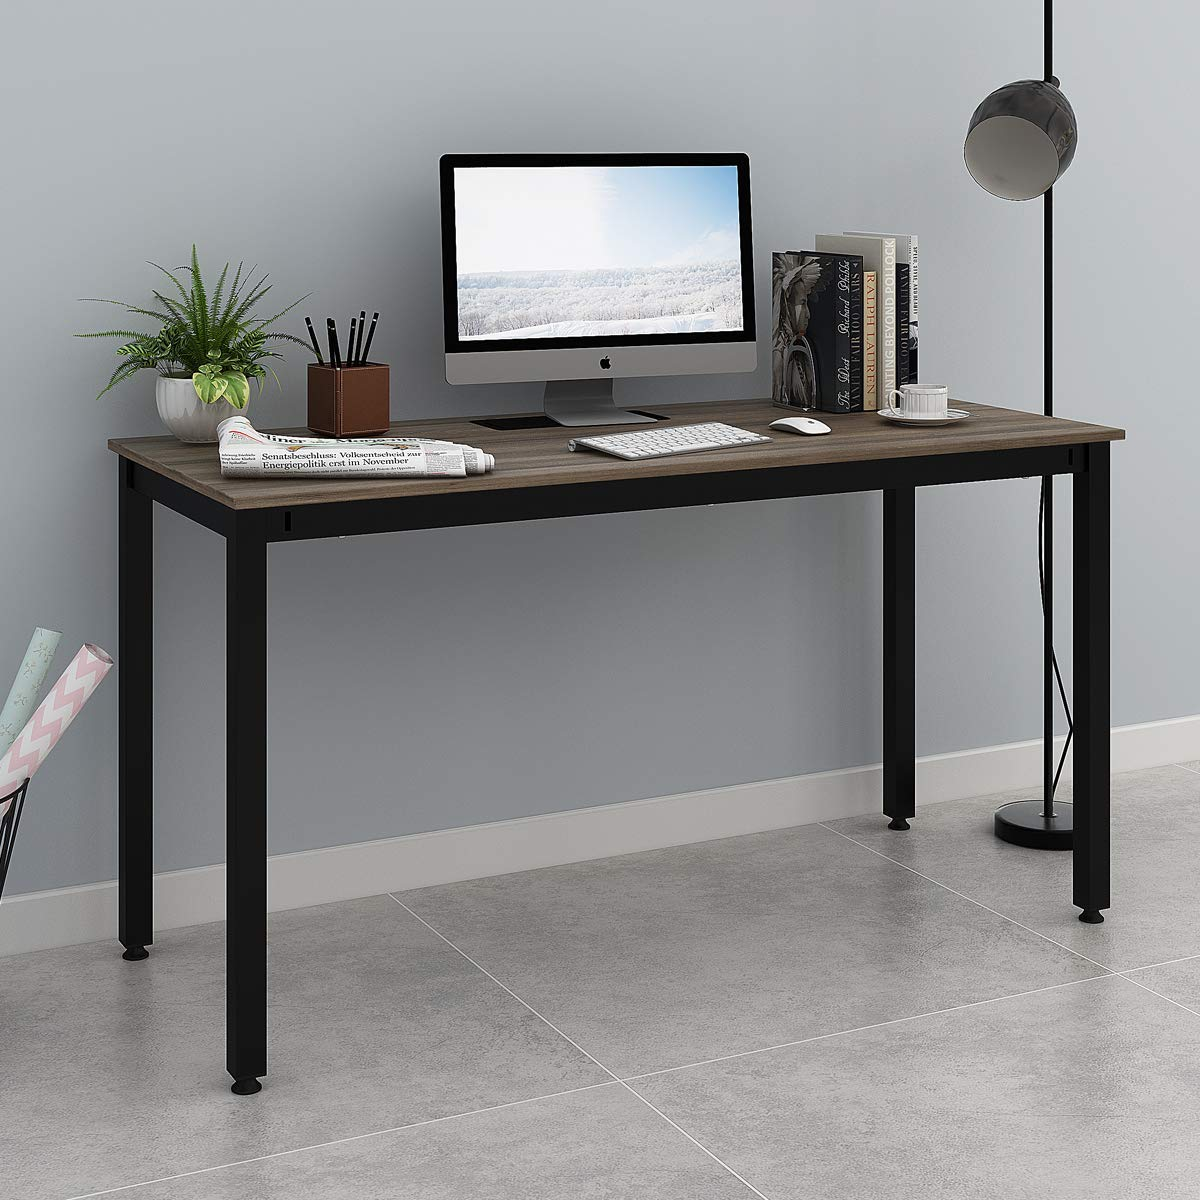 "DEVAISE Computer Desk 55"" Large Size, Home Office Desk with Cable Organizer / Black"